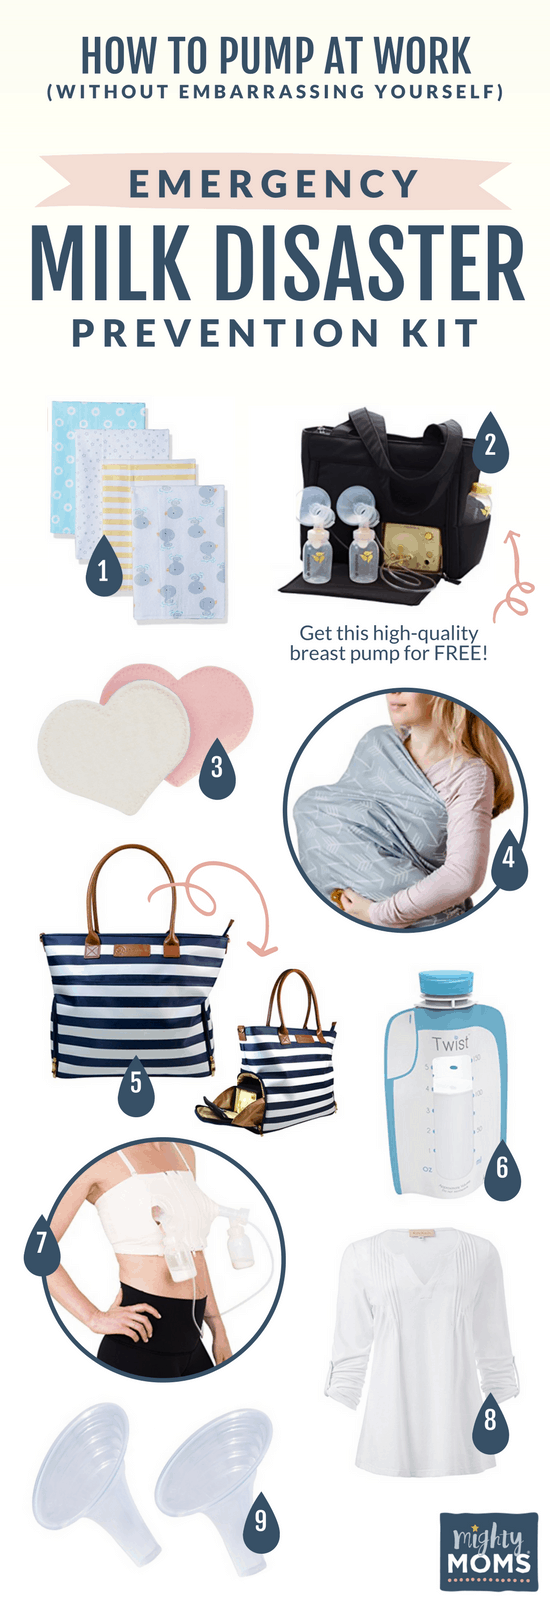 The Working Moms Pumping Survival Kit forecast